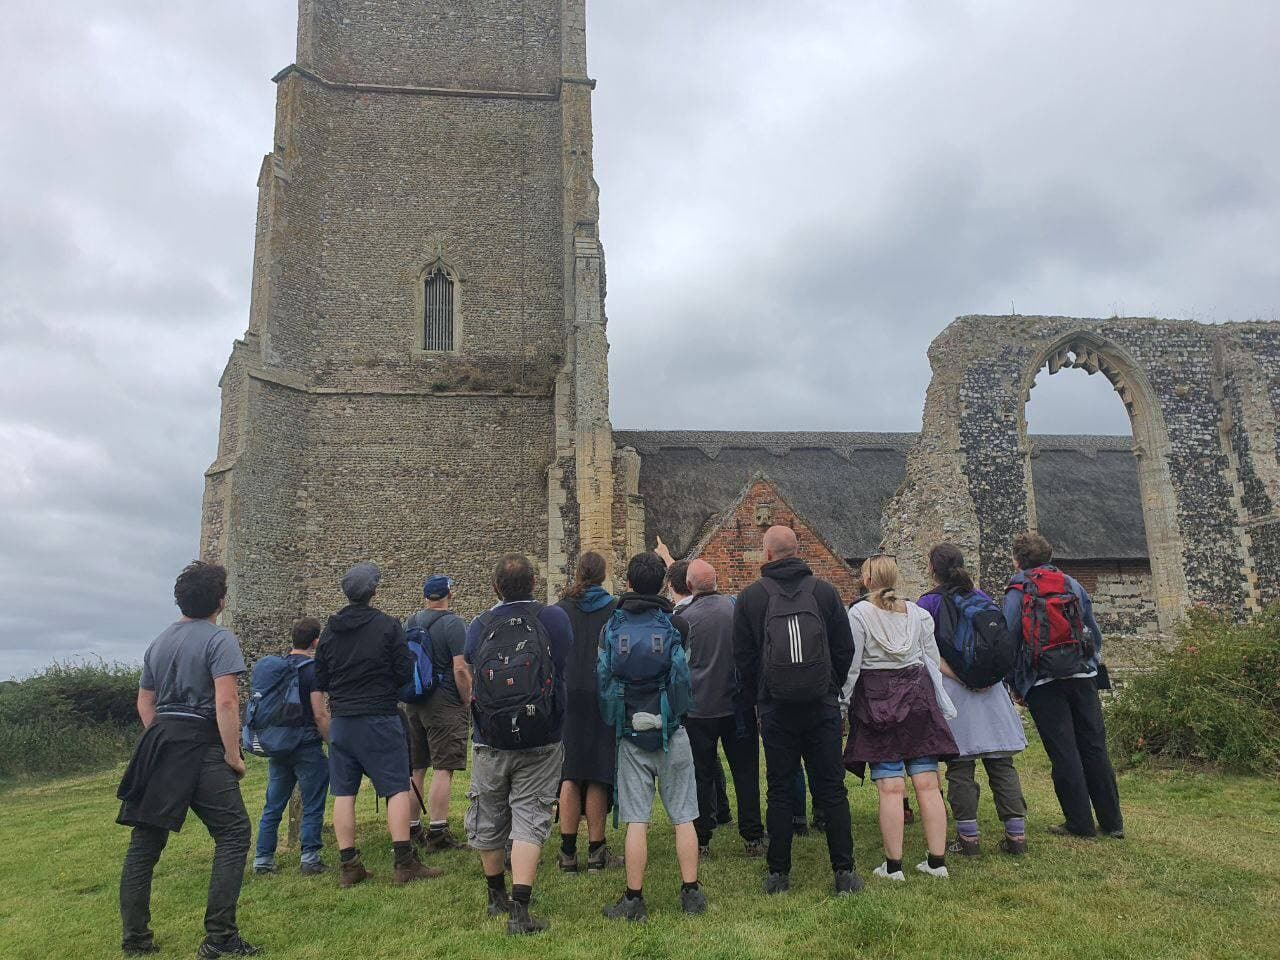 PA group hike visited a ruined church in Suffolk